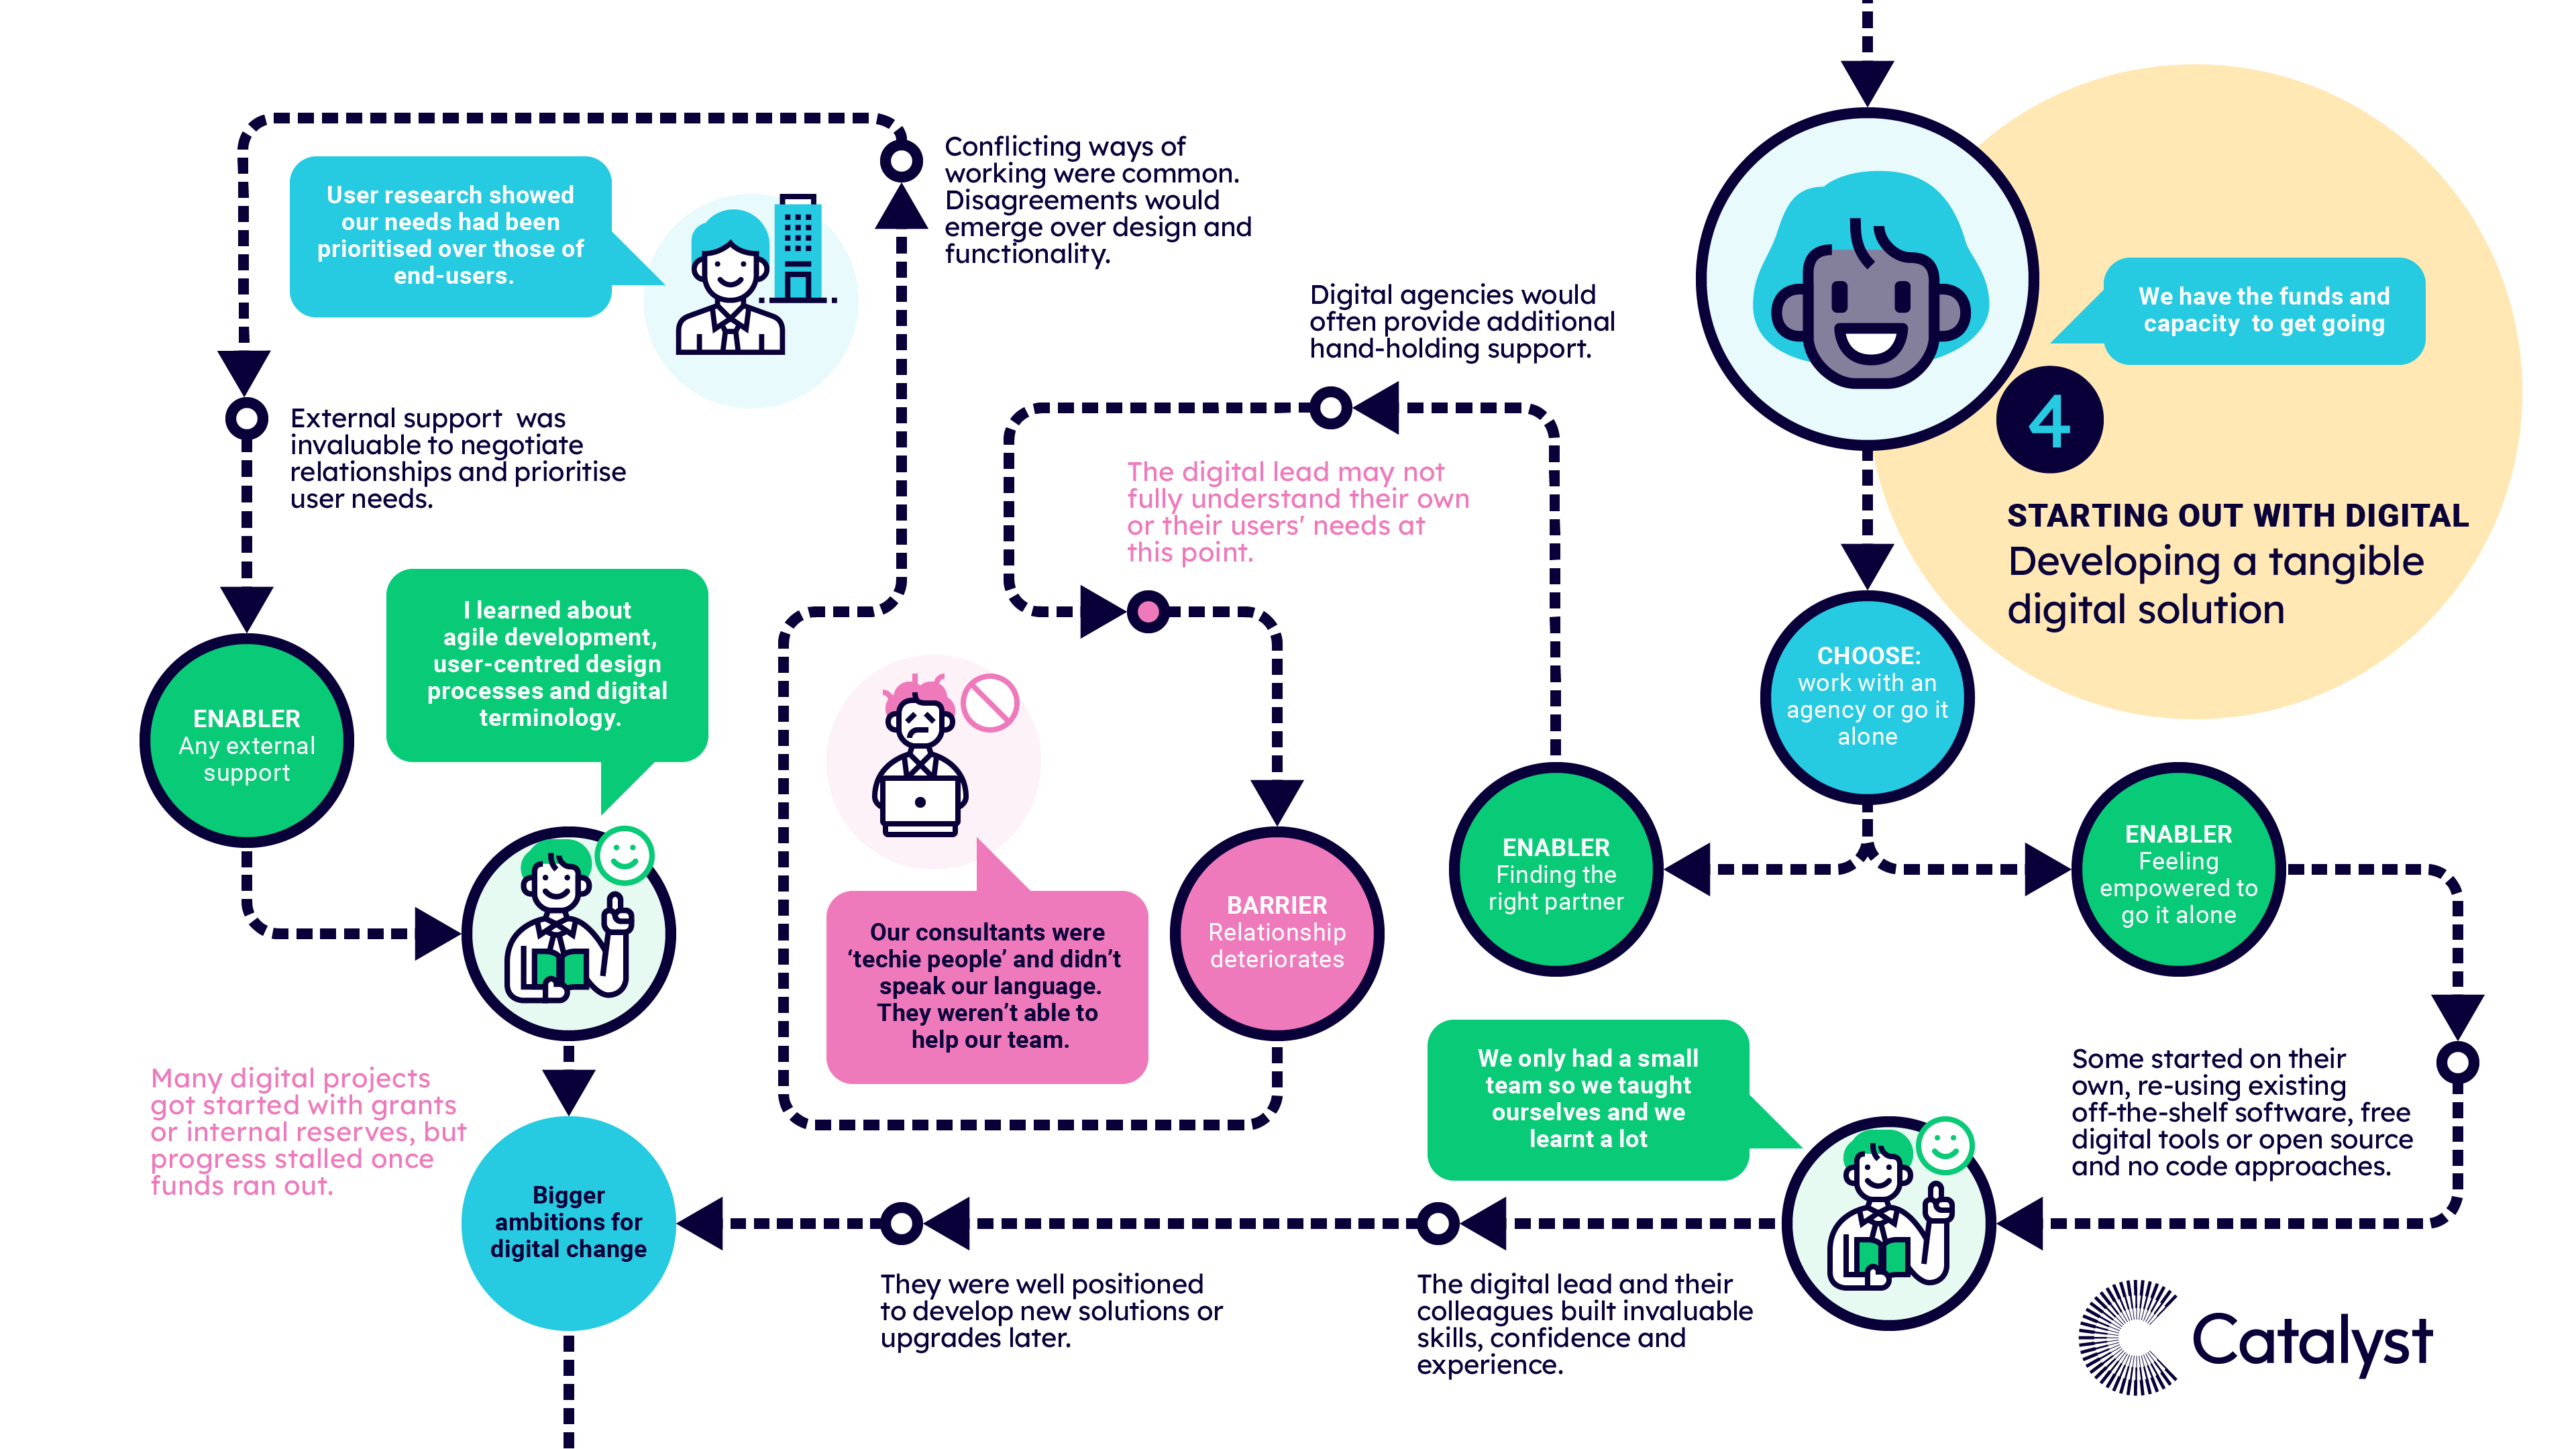 A visual map of pattern 4, when charities were starting out and developing a digital project. The text highlights the most common experiences, risk factors, barriers and enablers at this stage of the journey.